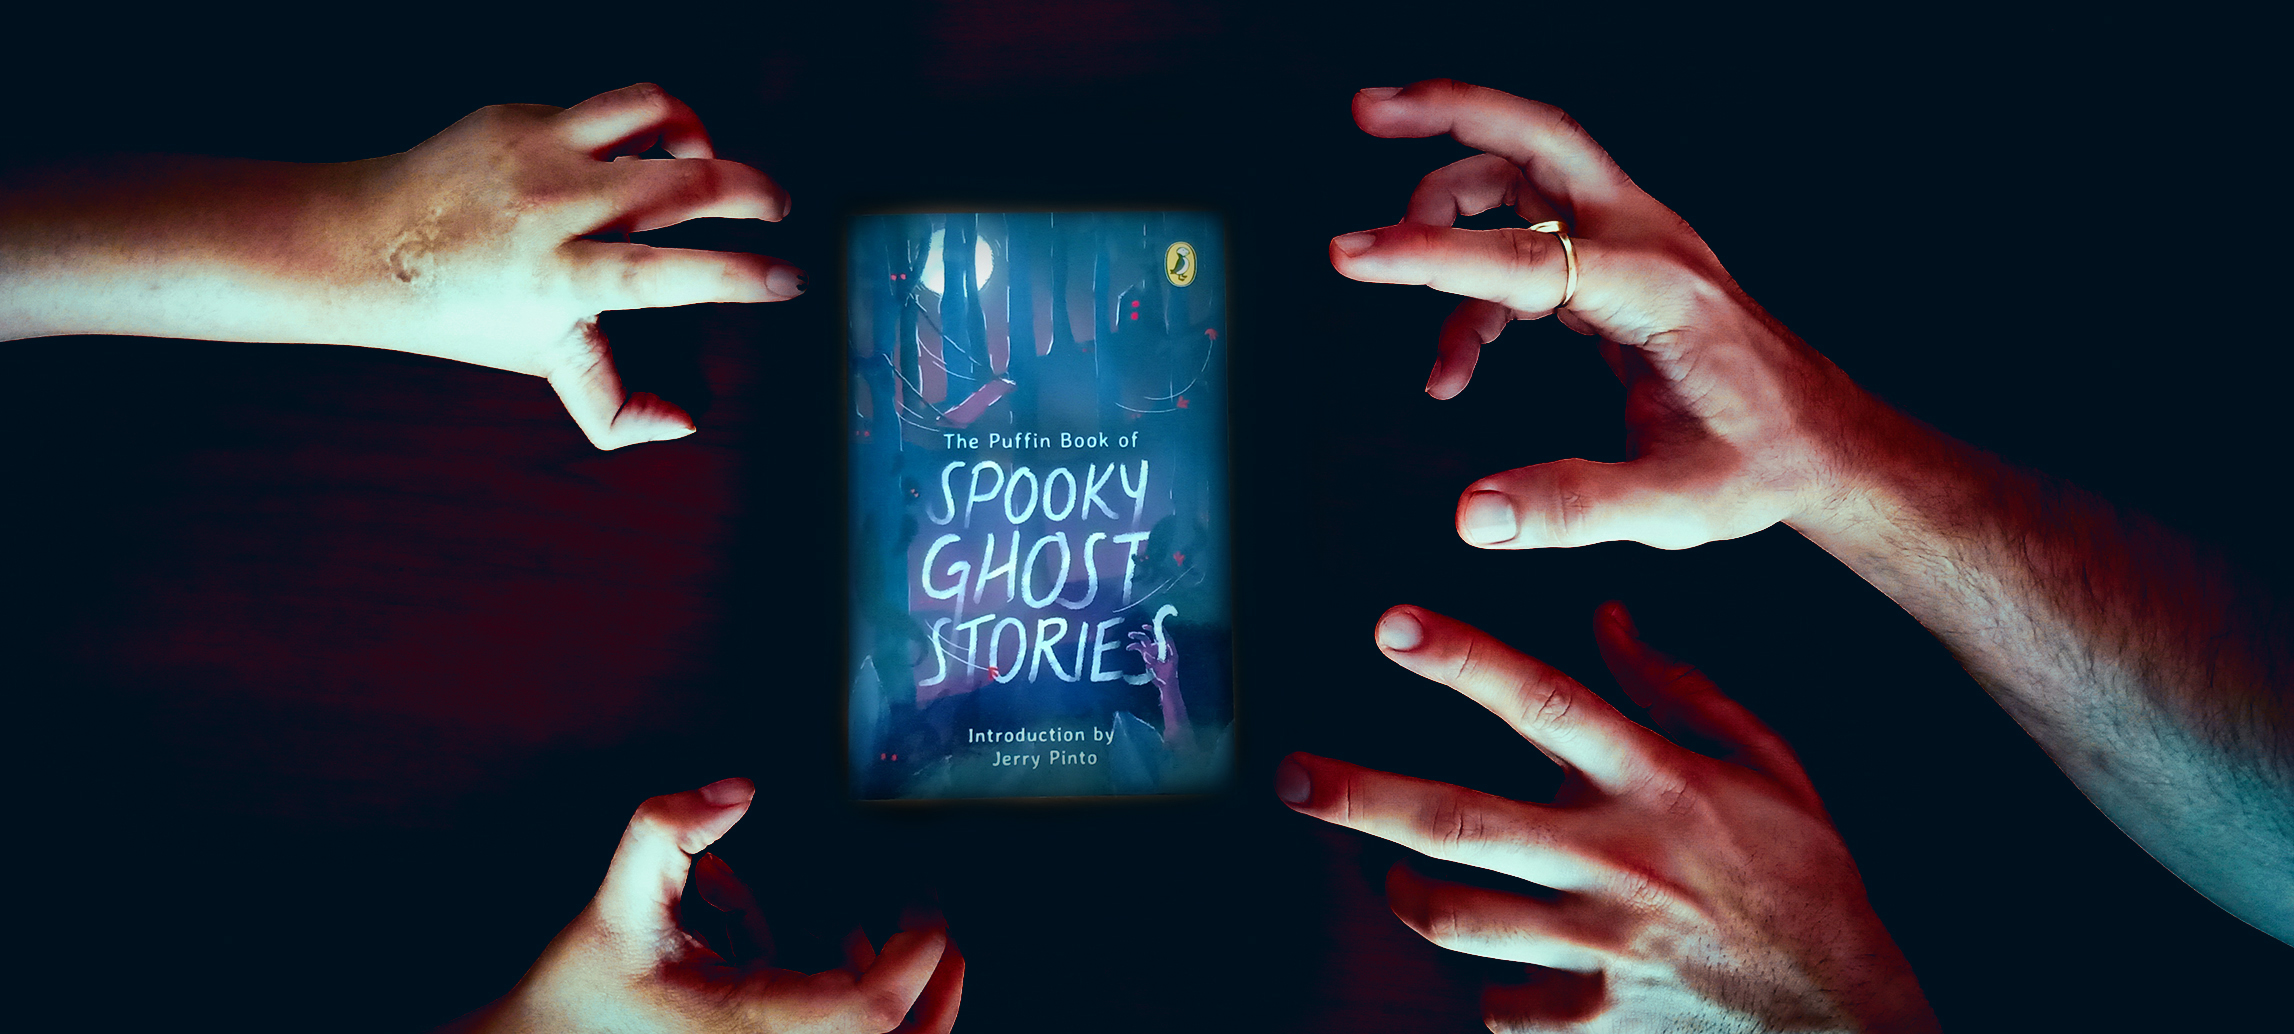 A Neighing Man And His Son: 'The Puffin Book of Spooky Ghost Stories' — An Excerpt